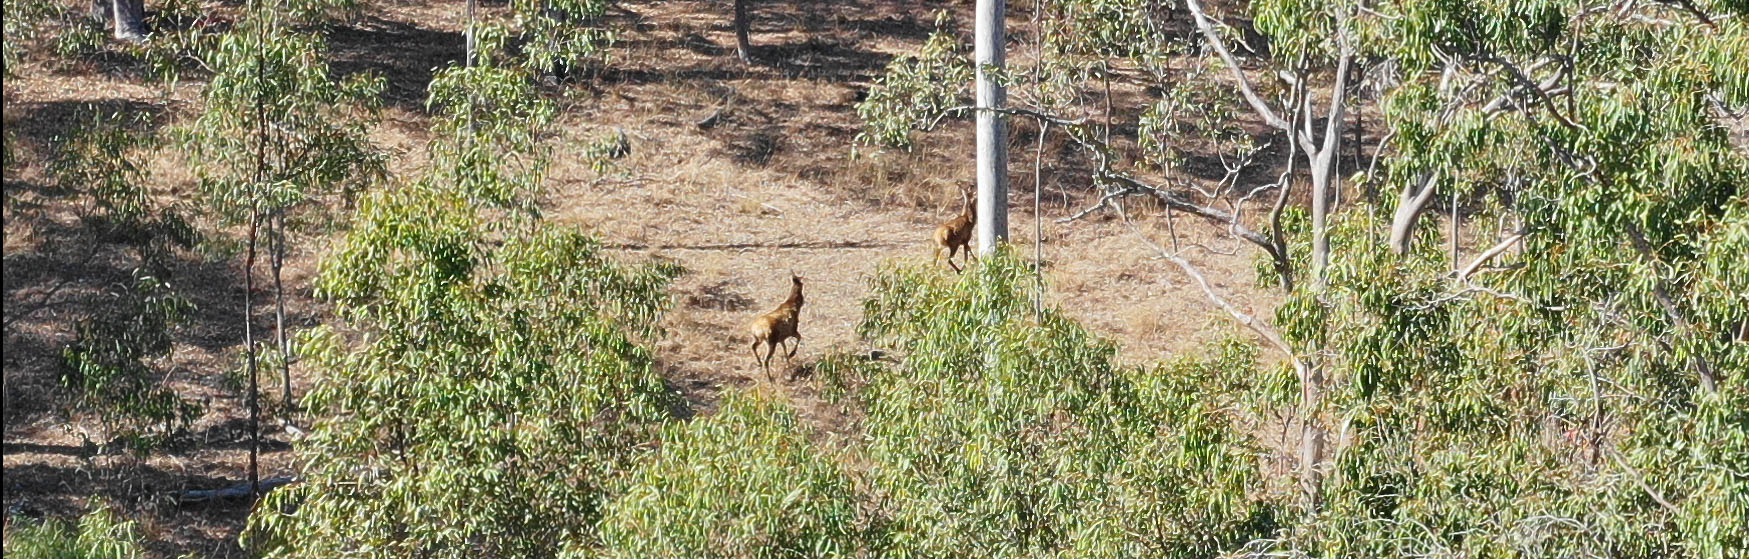 Red deer spotted via aerial reconnaissance drone during initial property inspection - 09/18